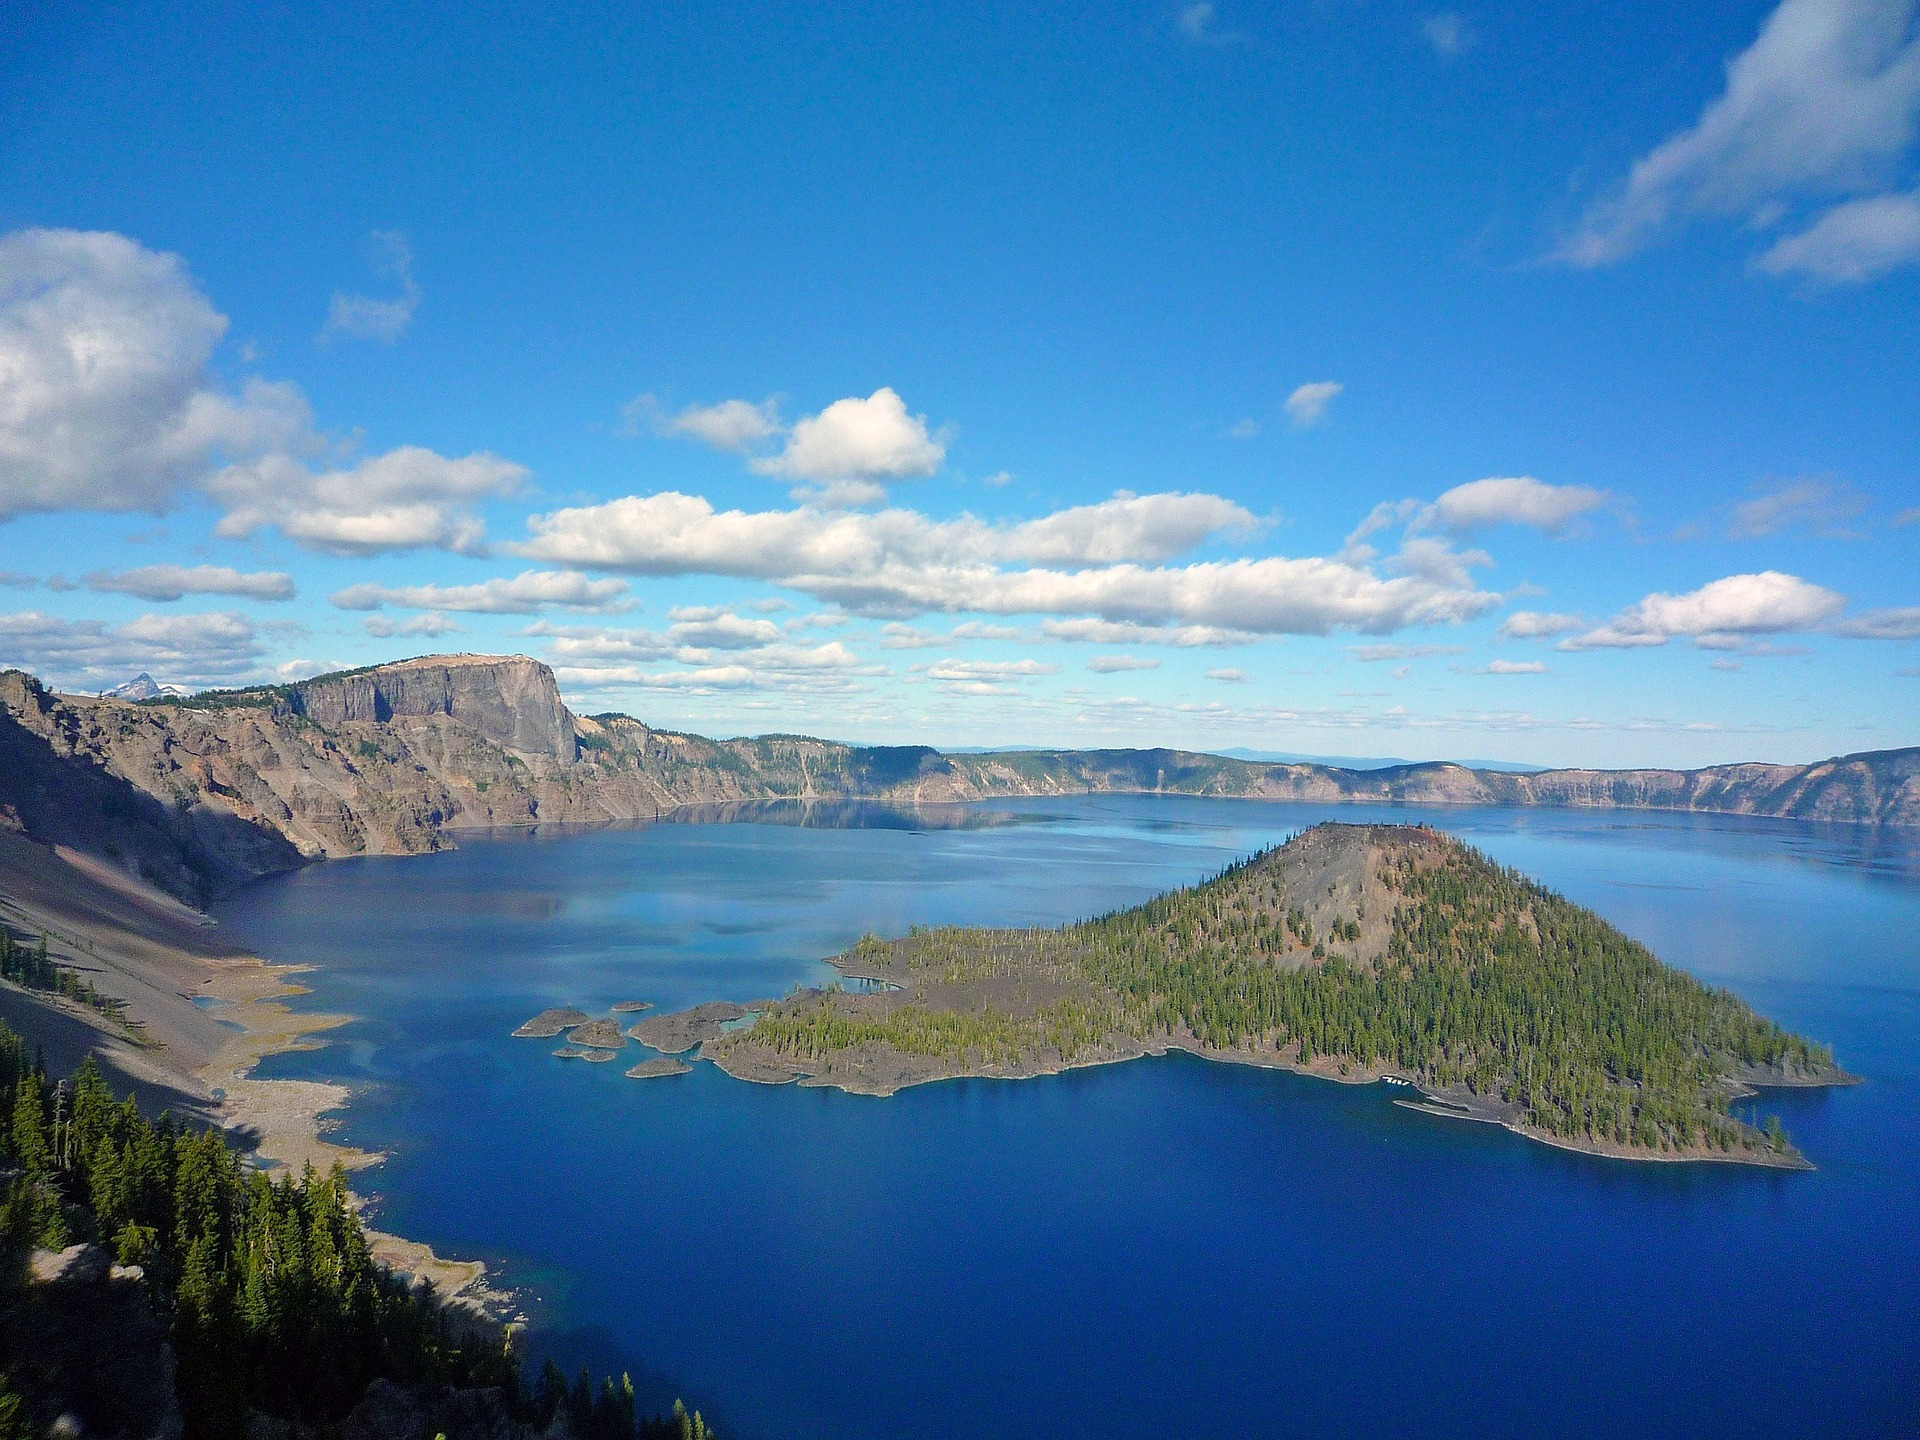 The beautiful Wizard Island in Crater Lake